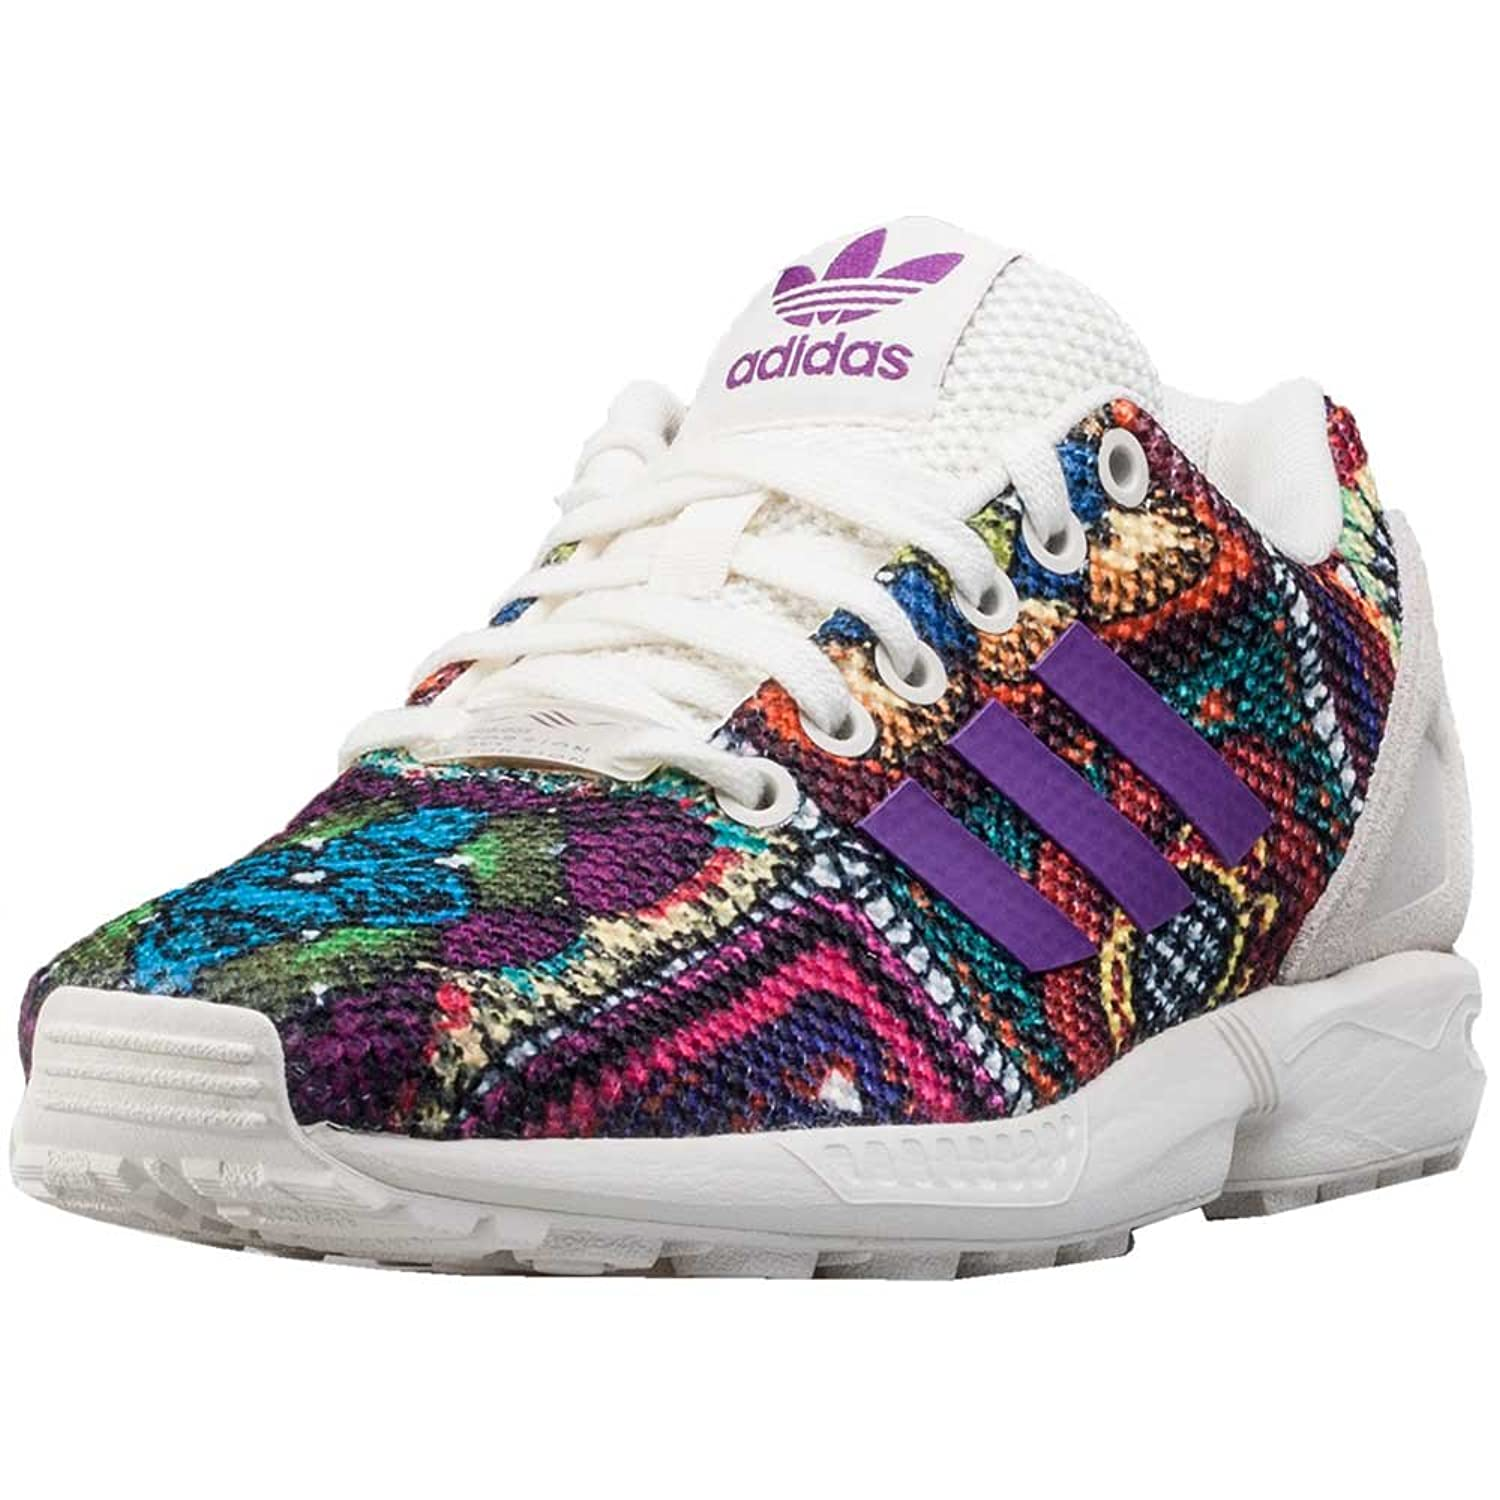 adidas Zx Flux W Womens Trainers